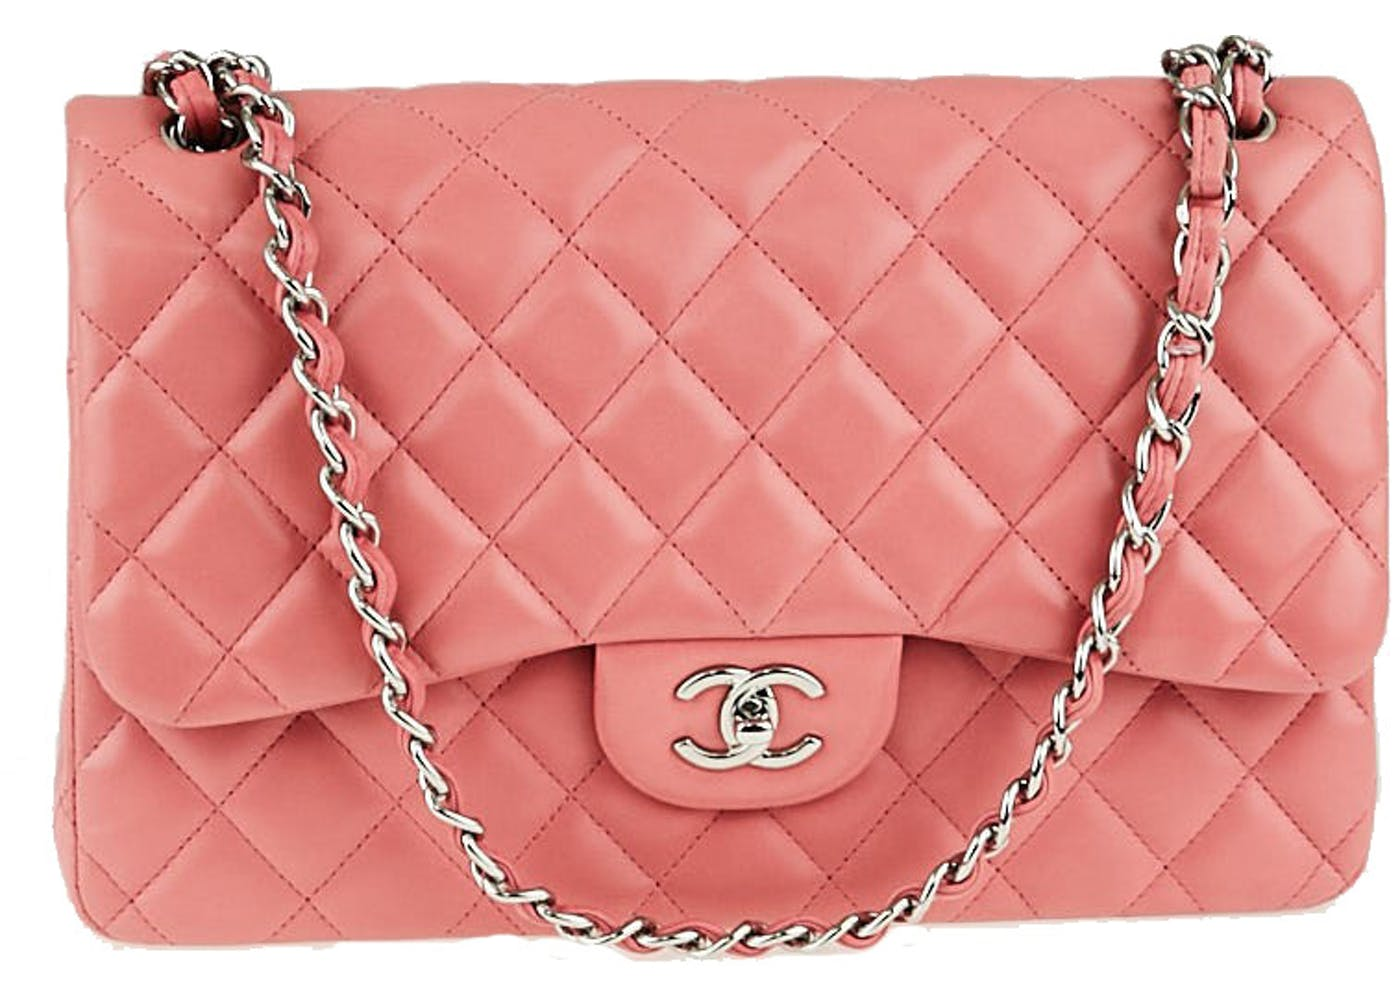 707a7584235342 In 1983, when Karl Lagerfeld took over as head designer at Chanel, he  introduced the CC turn-lock design to the classic flap bags, creating an  icon for ...